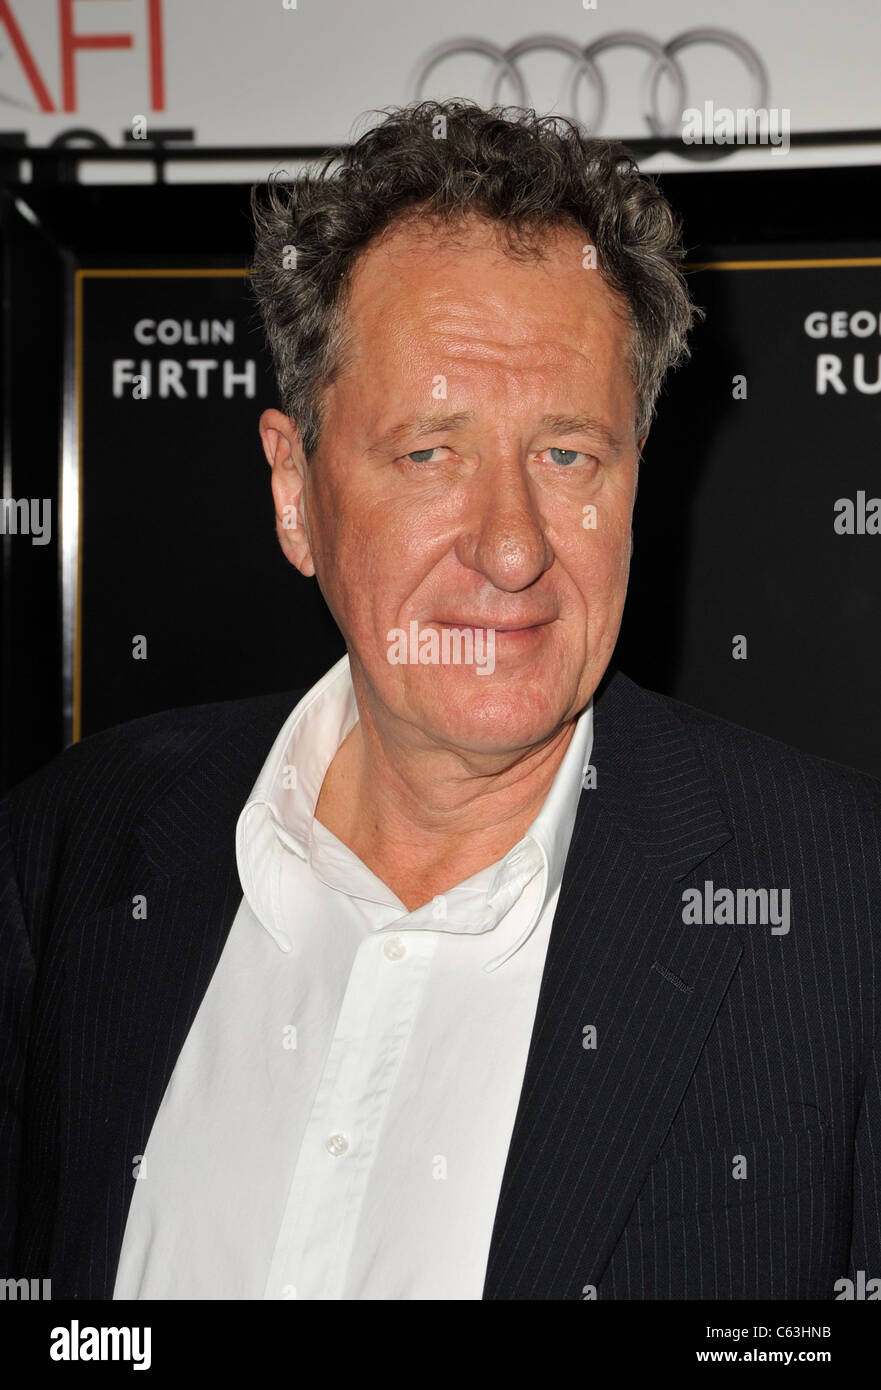 Geoffrey Rush at arrivals for AFI FEST 2010 Screening of THE KING'S SPEECH, Grauman's Chinese Theatre, Los - Stock Image